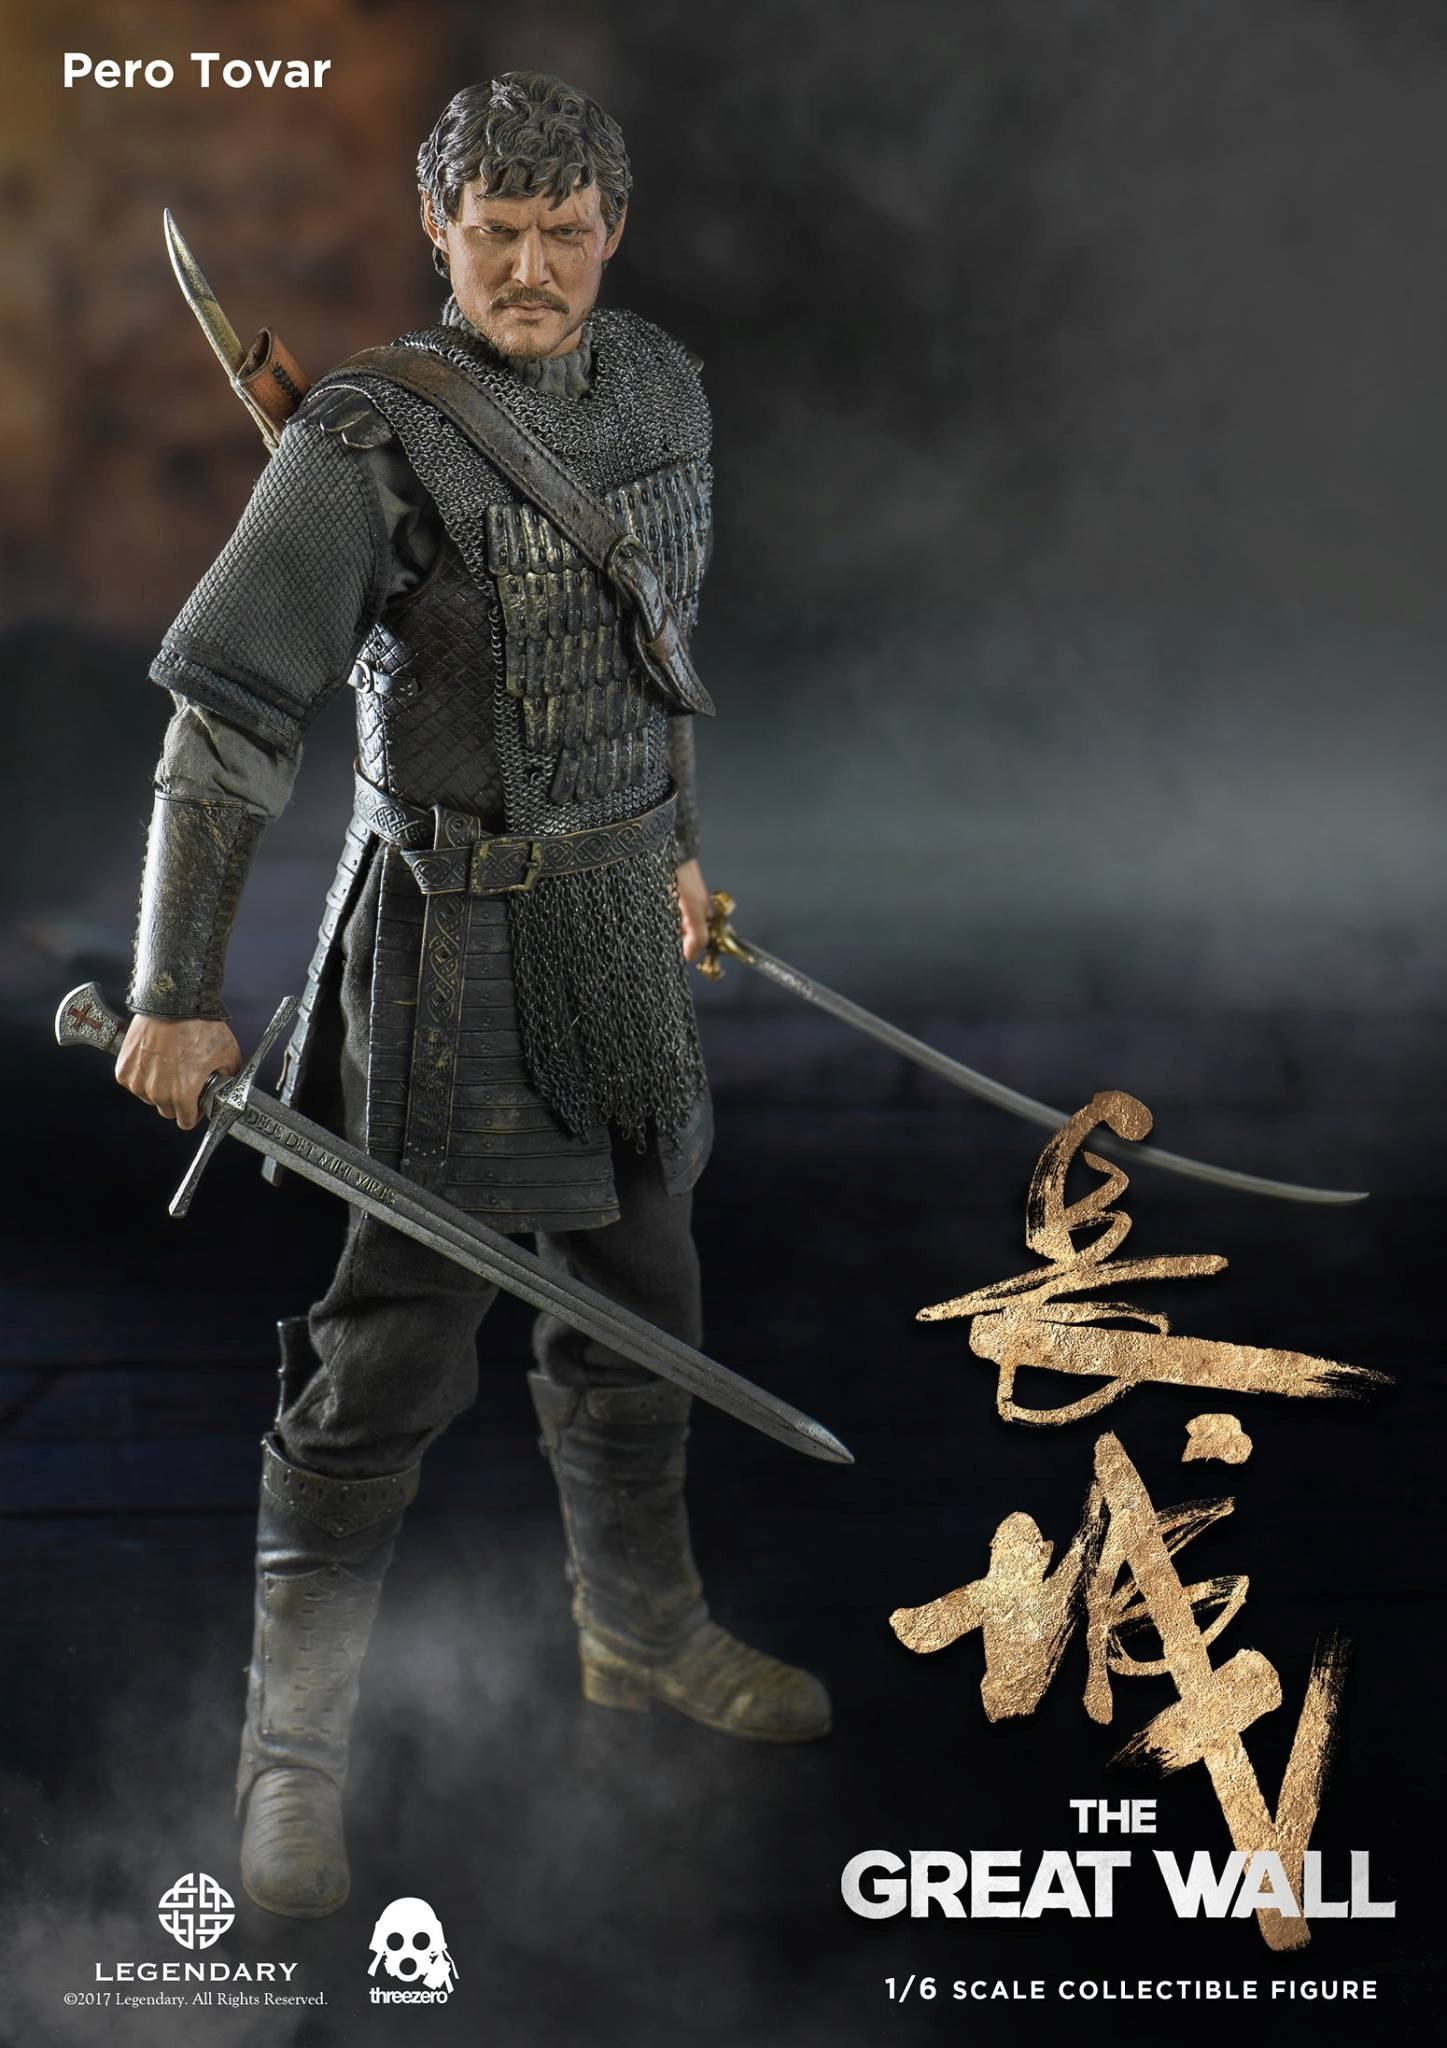 Pero-Tovar-The-Great-Wall-Action-Figure-04